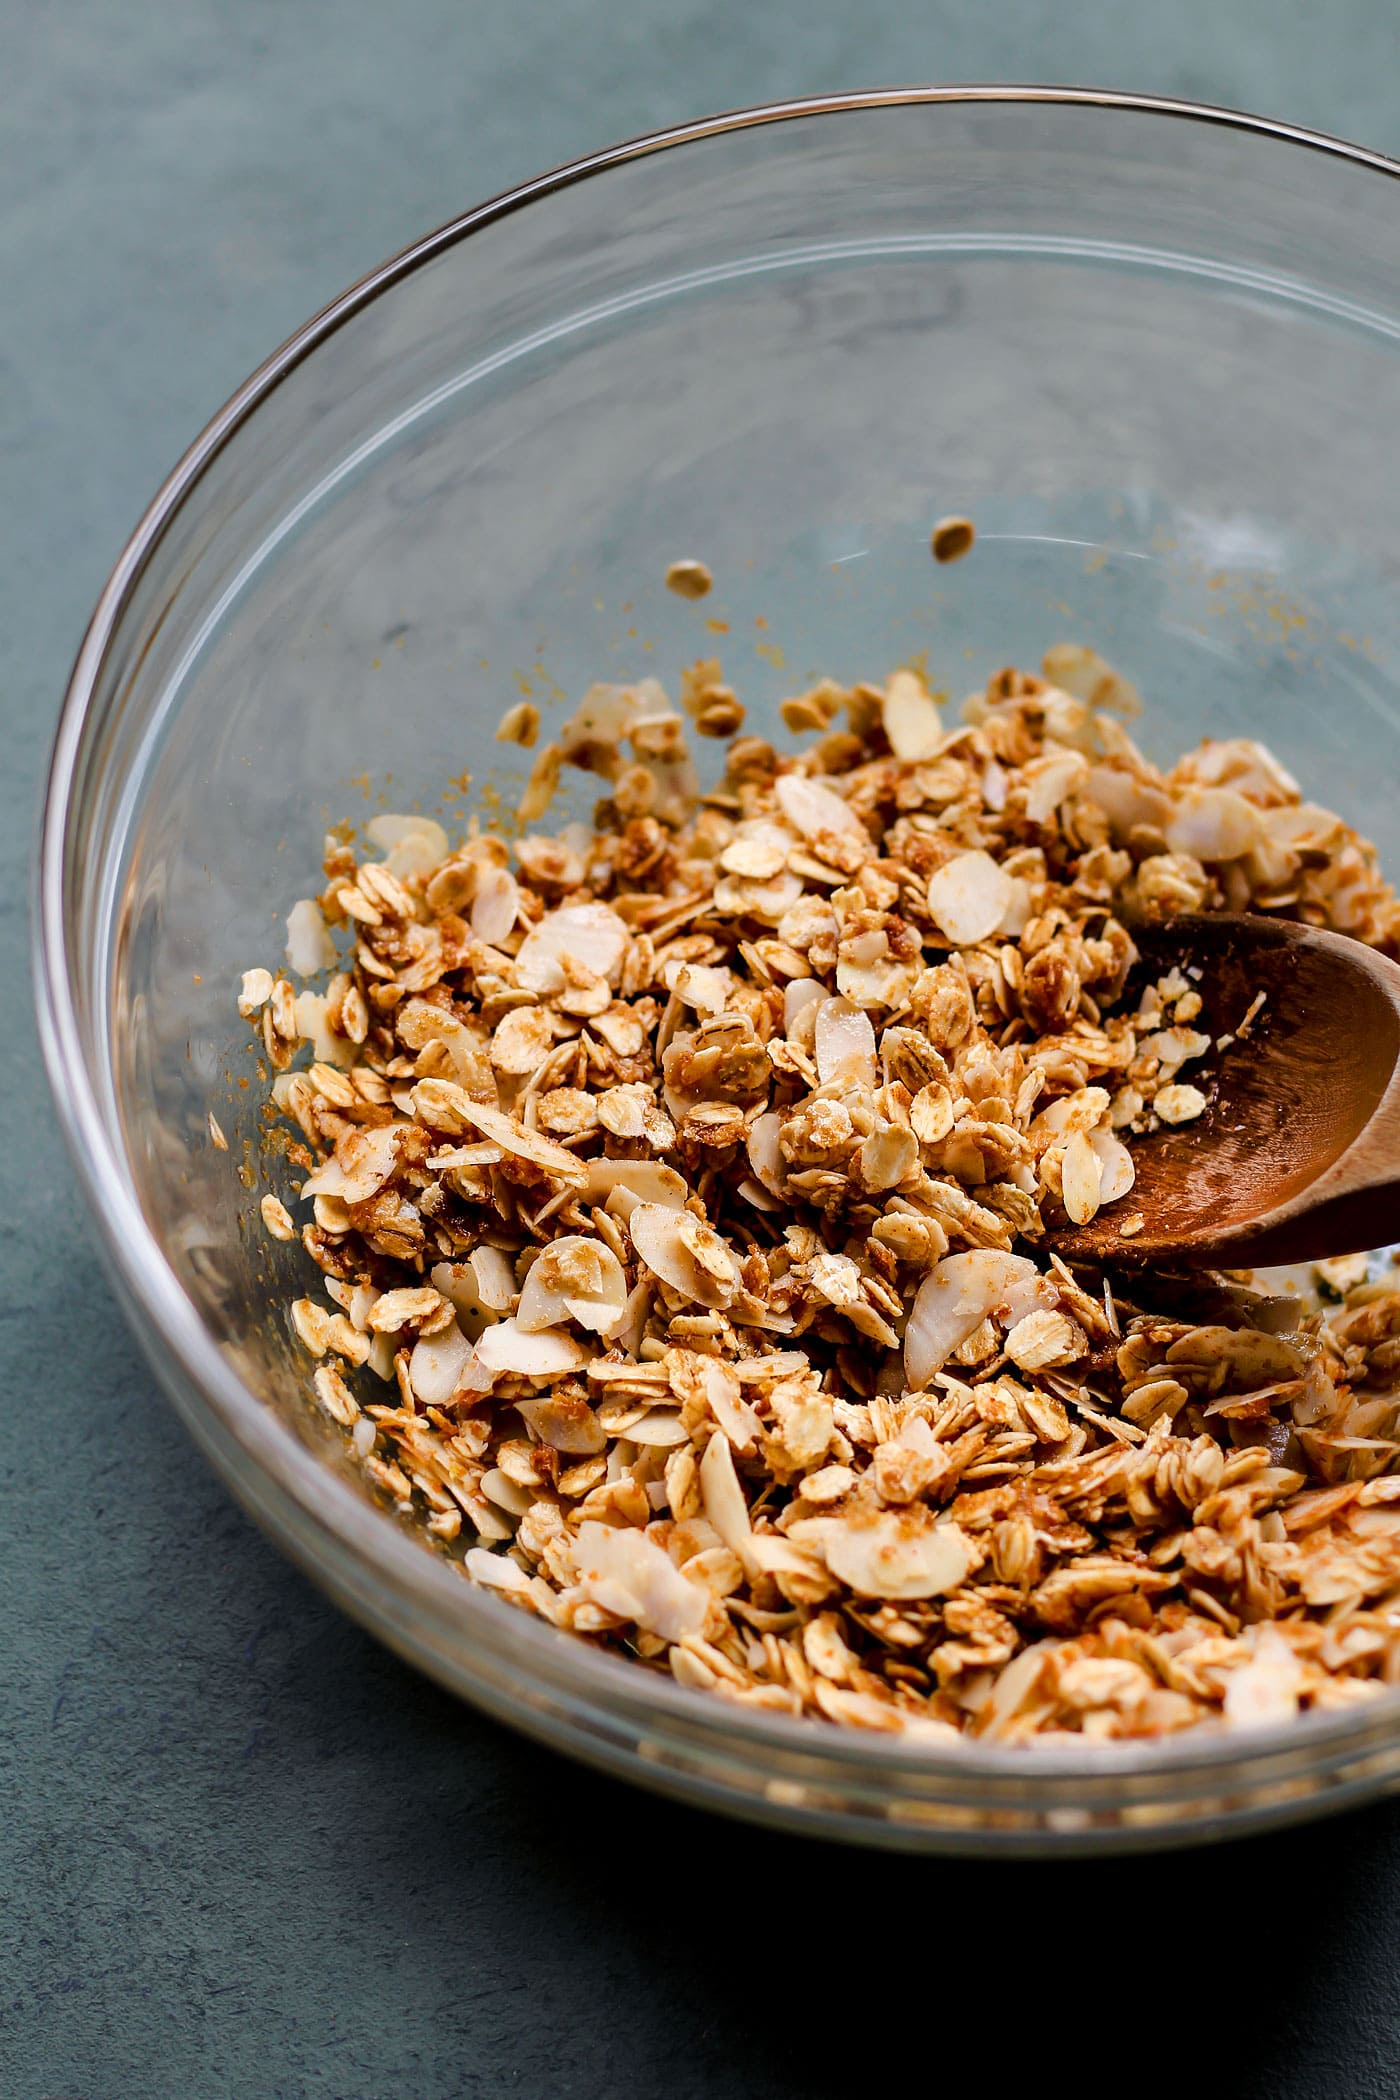 Chili Cheese Granola